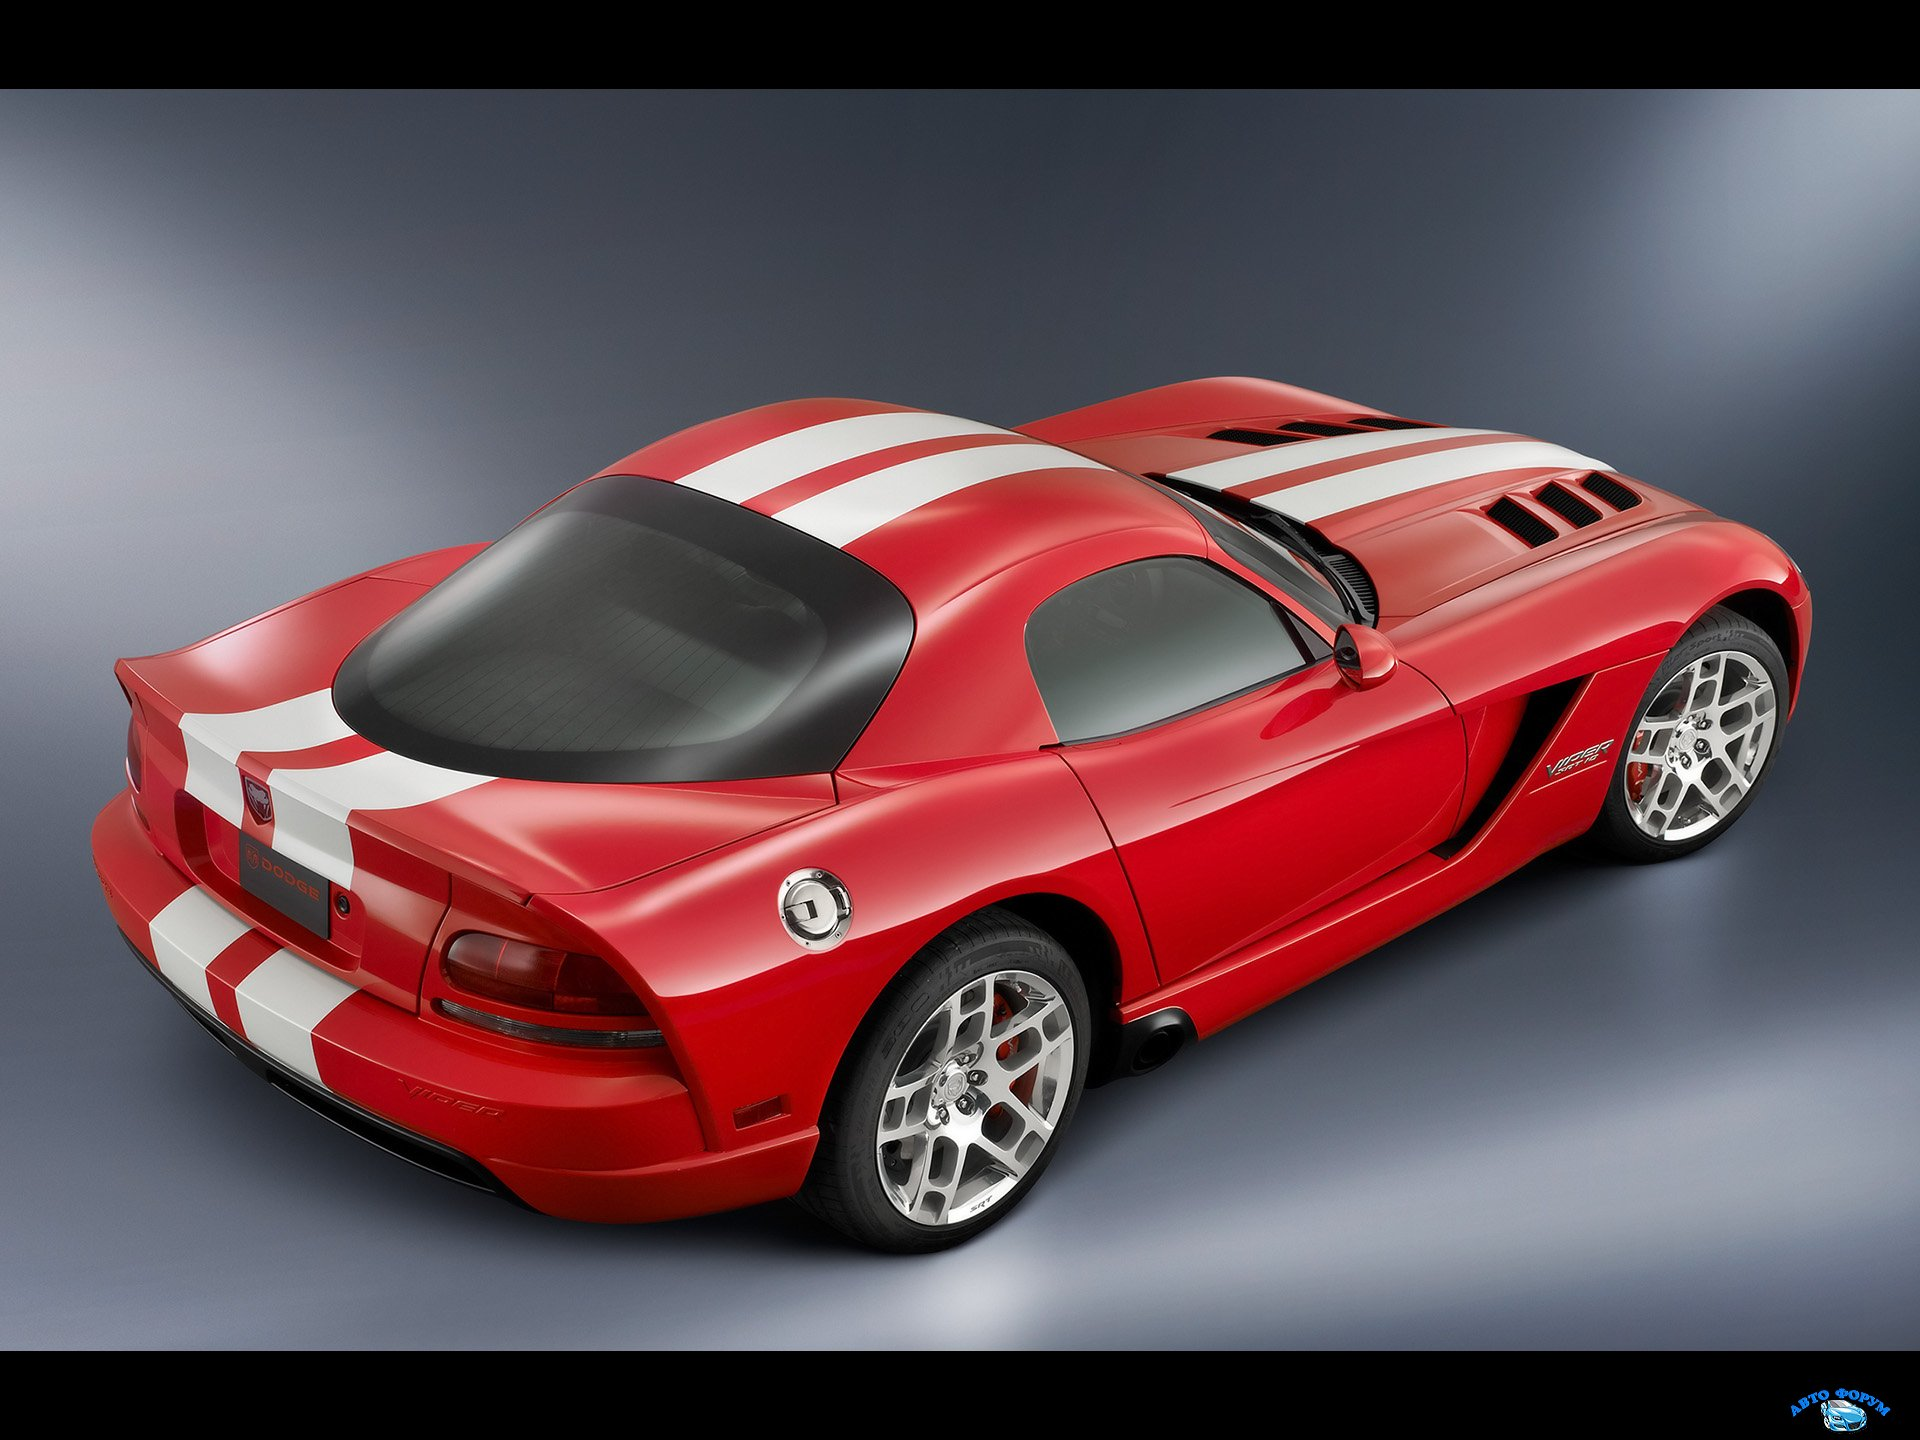 2008-Dodge-Viper-SRT10-Coupe-Rear-And-Side-1920x1440.jpg